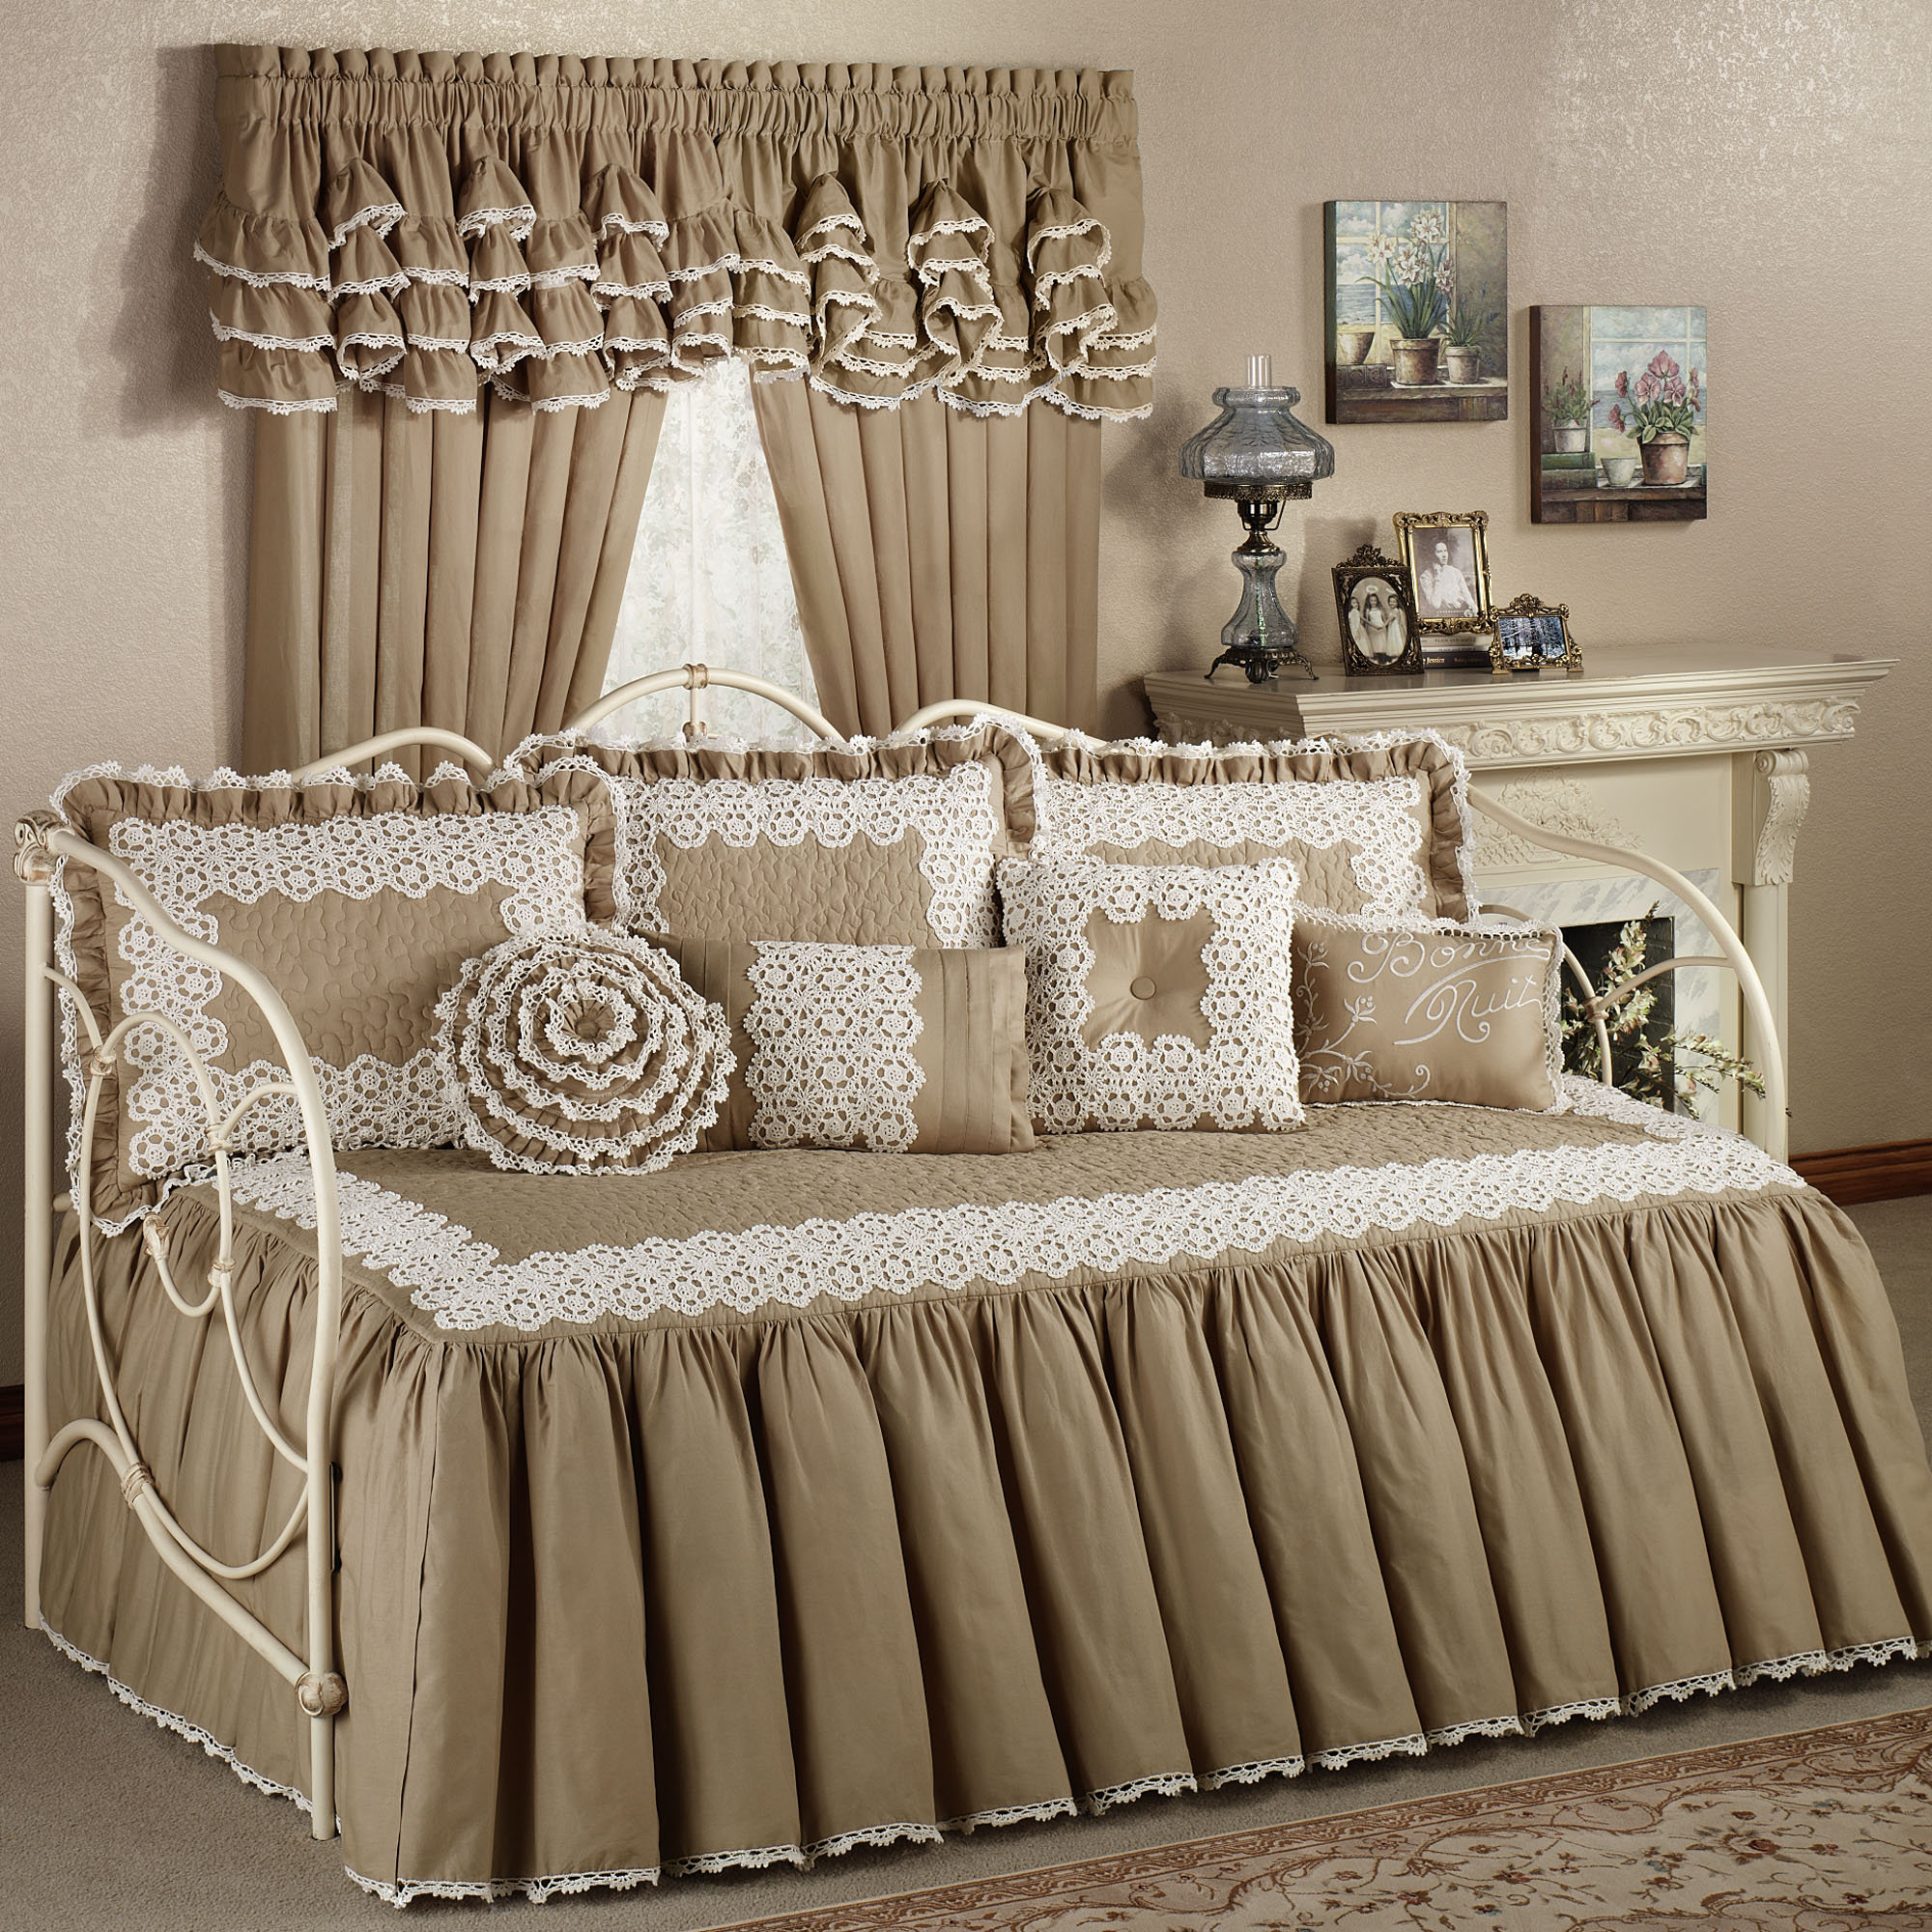 brown daybed bedding sets photo - 8